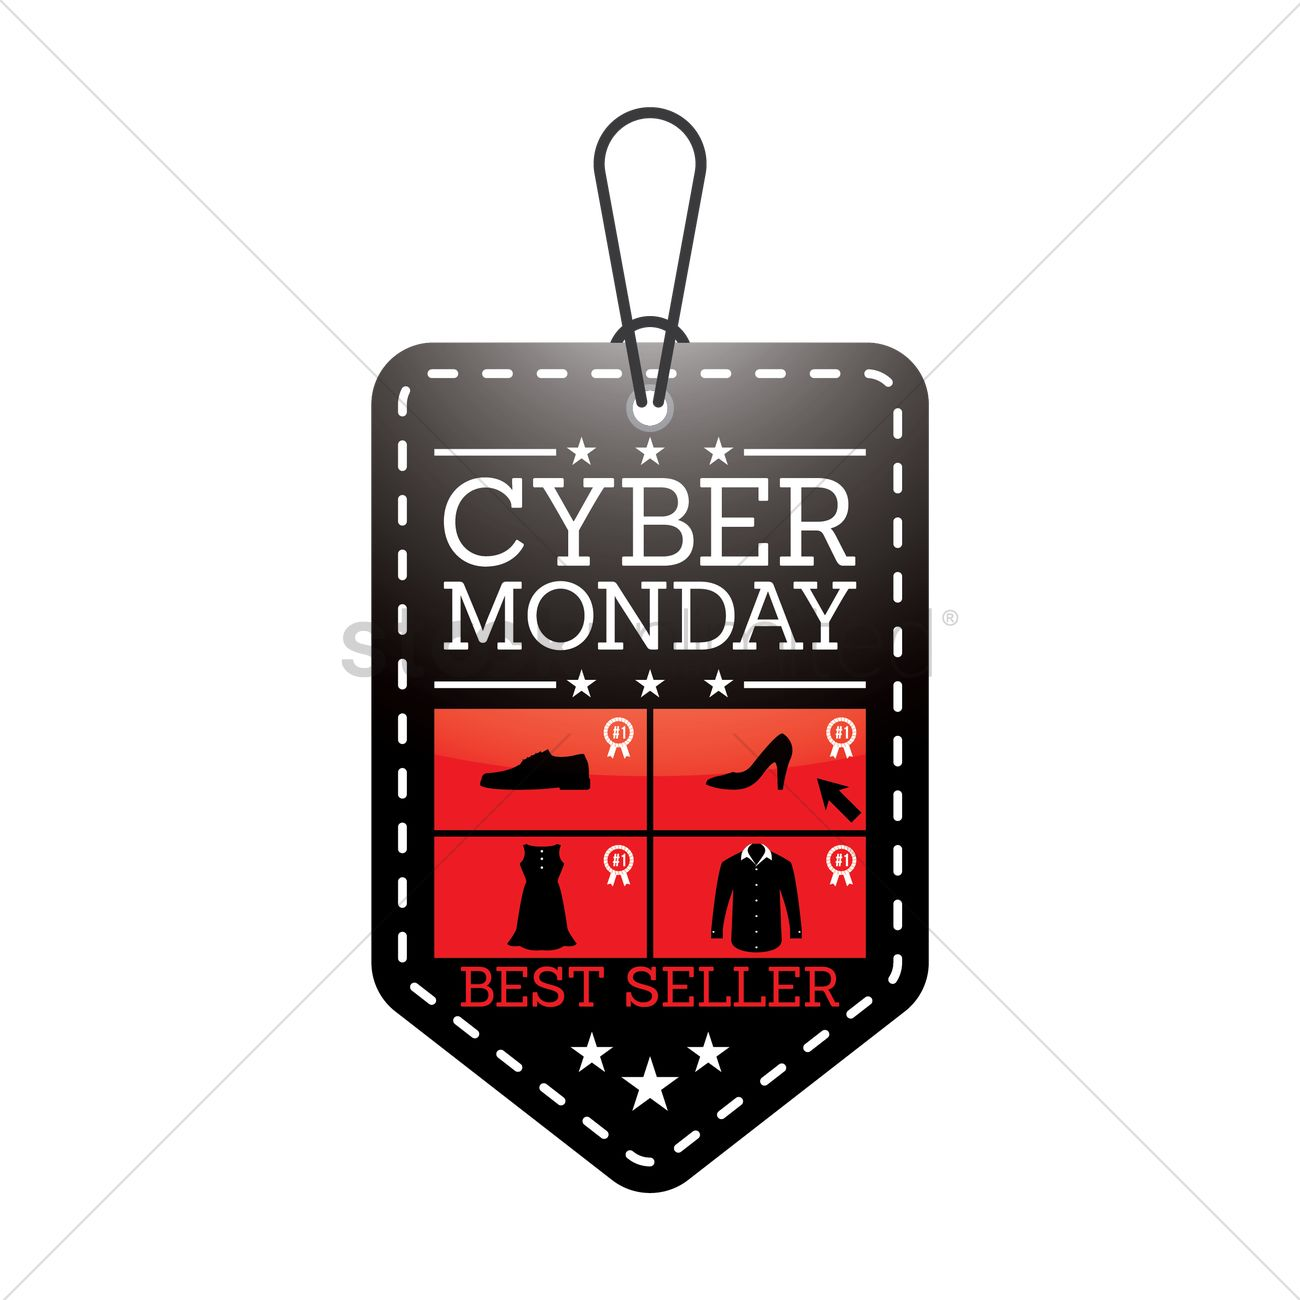 Cyber monday sale tag Vector Image - 1824393 | StockUnlimited